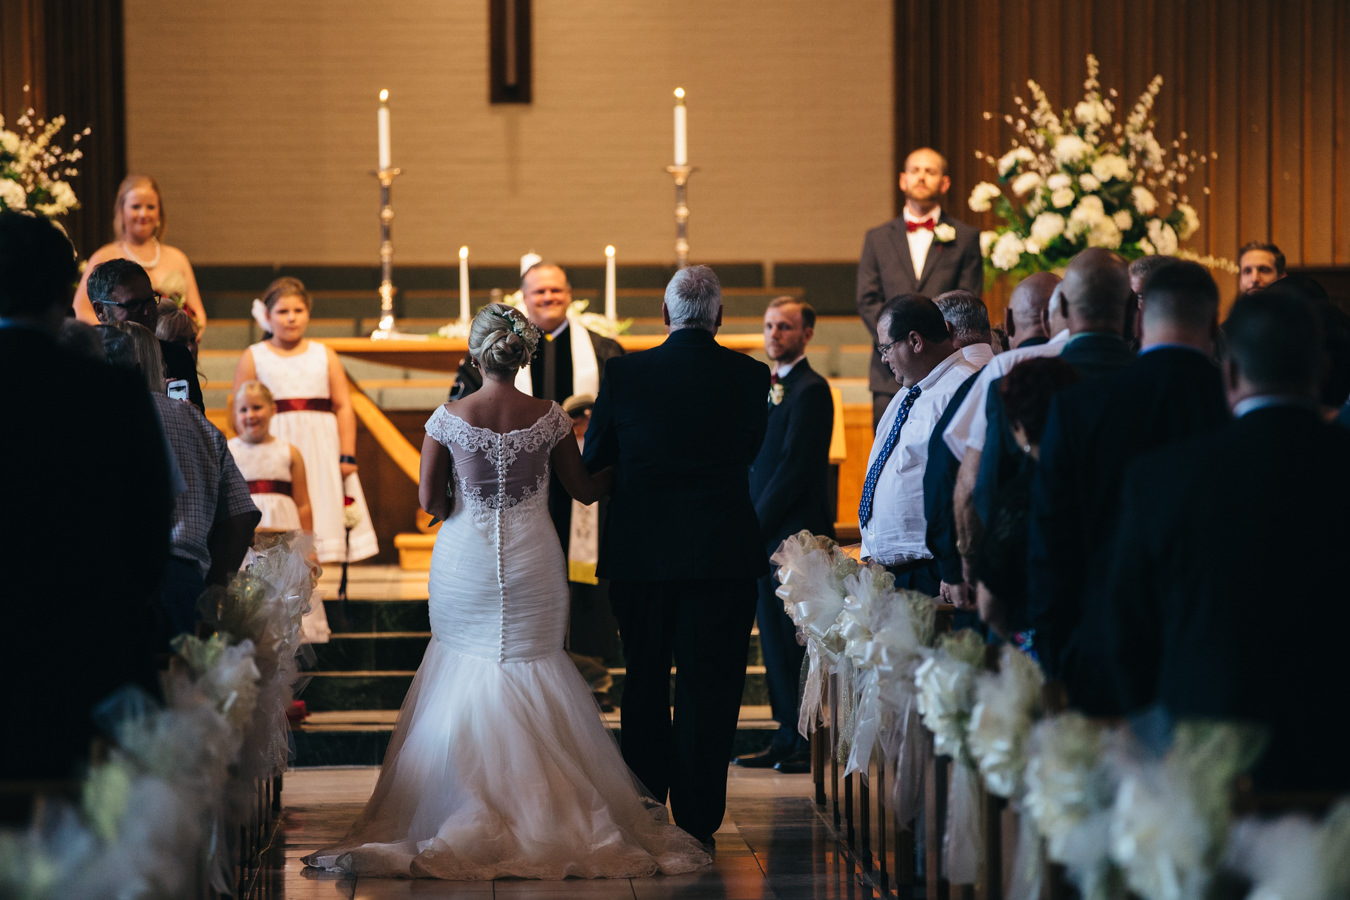 Brides father walks her down the aisle at Epworth United Methodist Church in Toledo